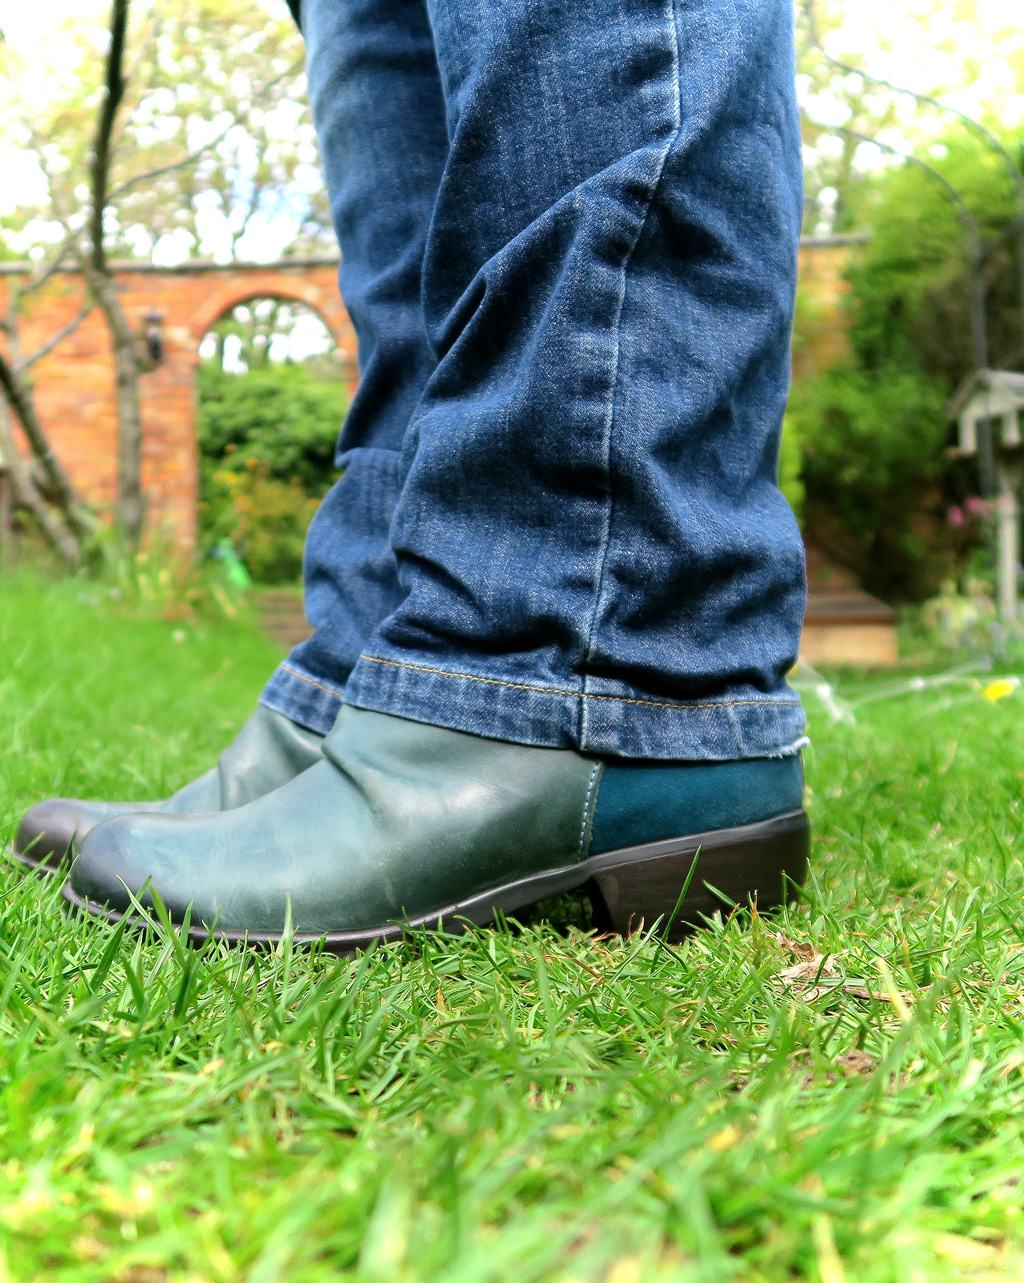 blue-suede-shoes-outdoors